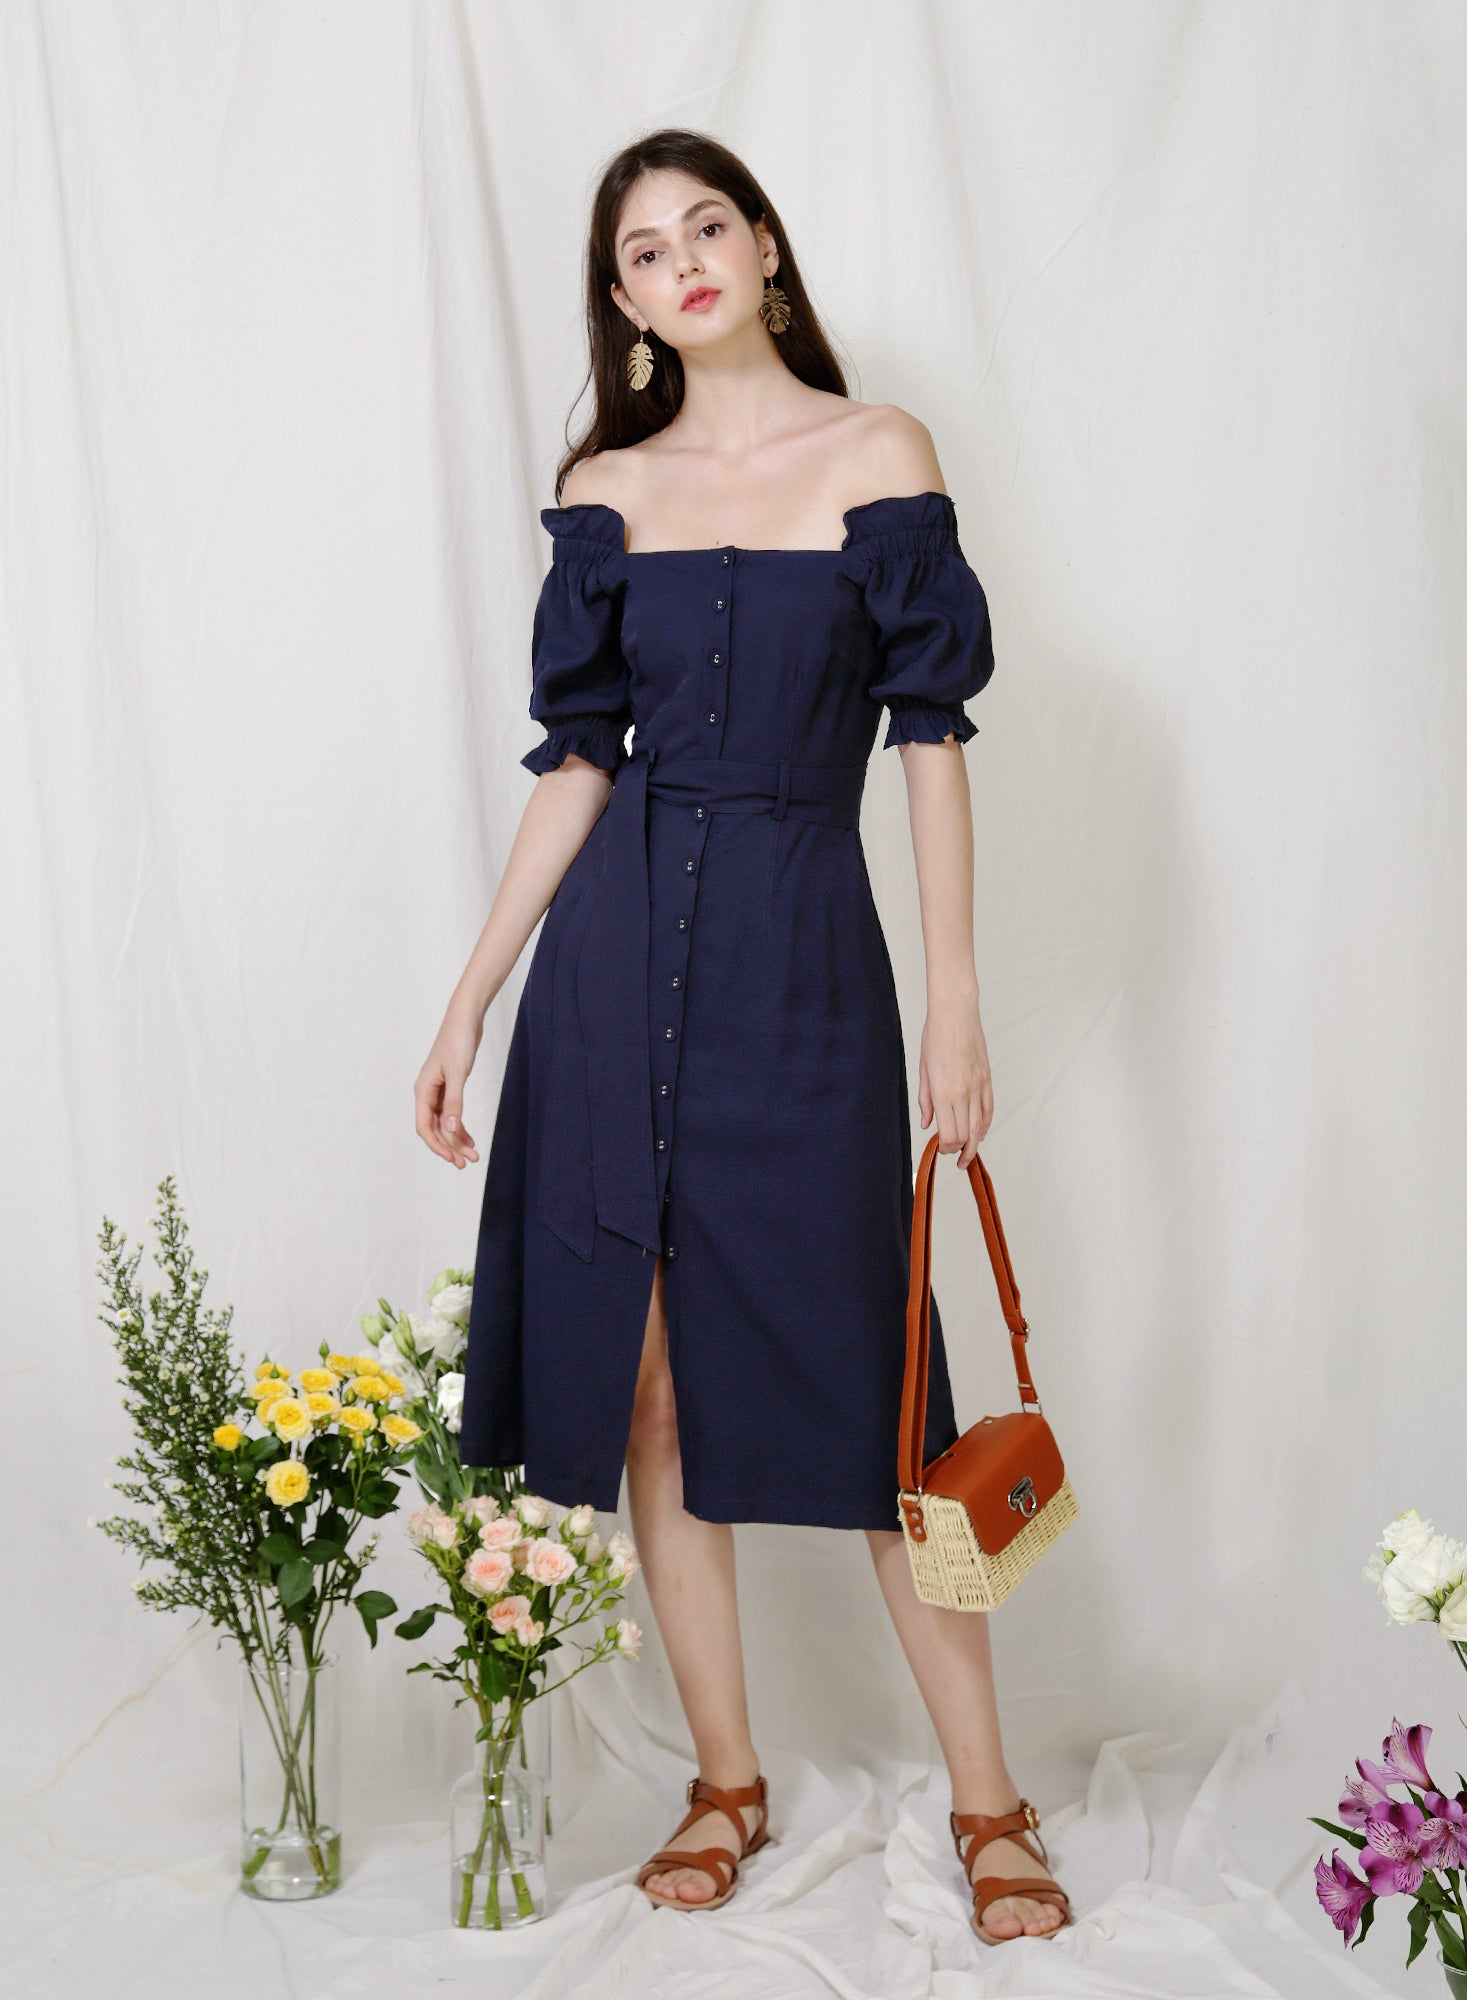 Explorer Button Down Midi Dress (Navy) at $ 46.00 only sold at And Well Dressed Online Fashion Store Singapore